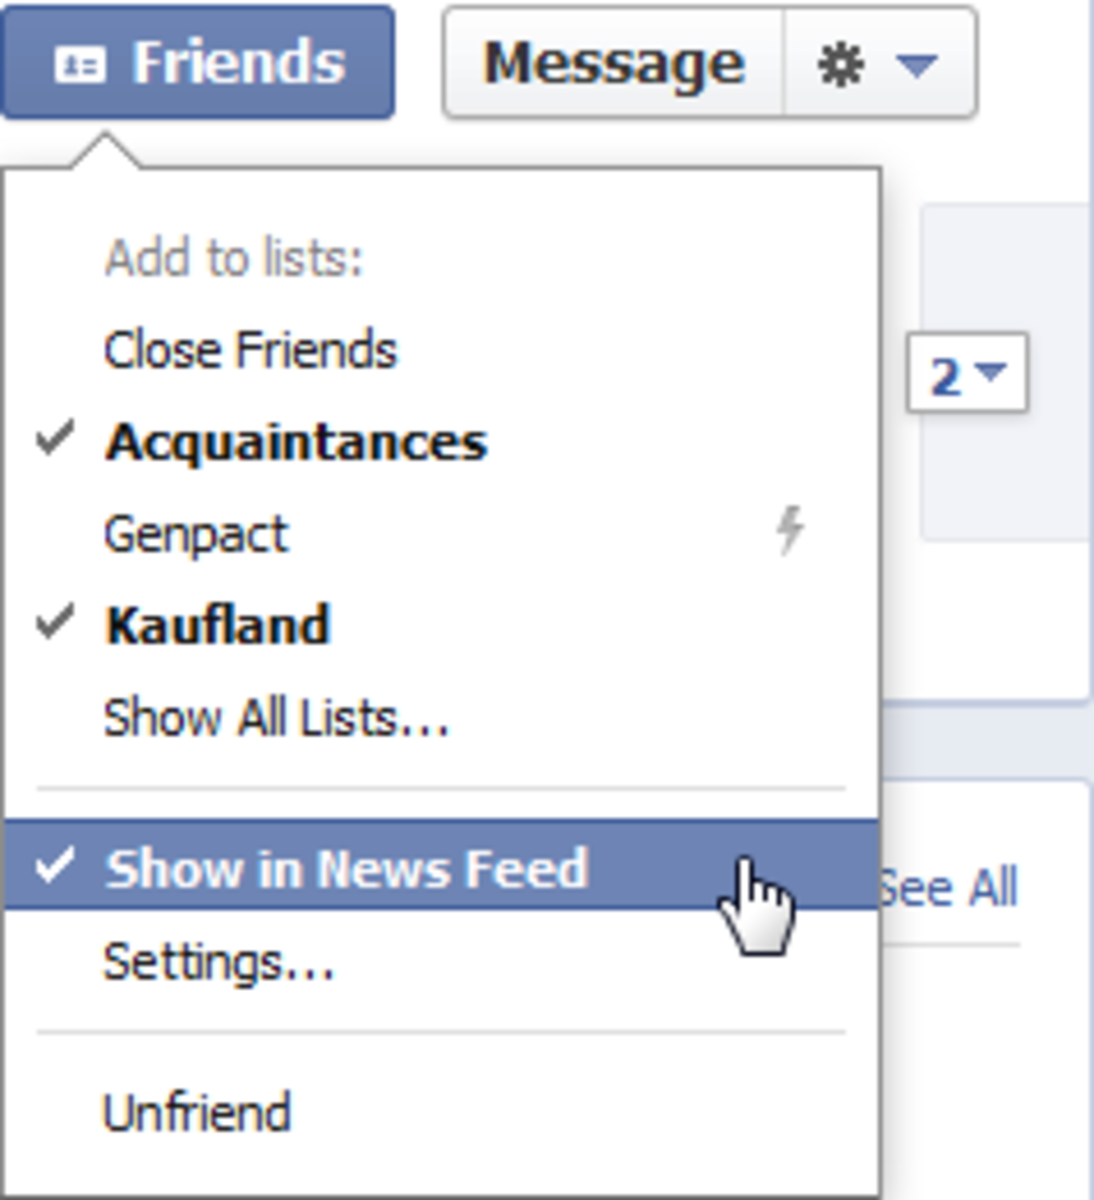 Hiding activities from annoying Facebook friends instead of deleting them is a win-win situation :)